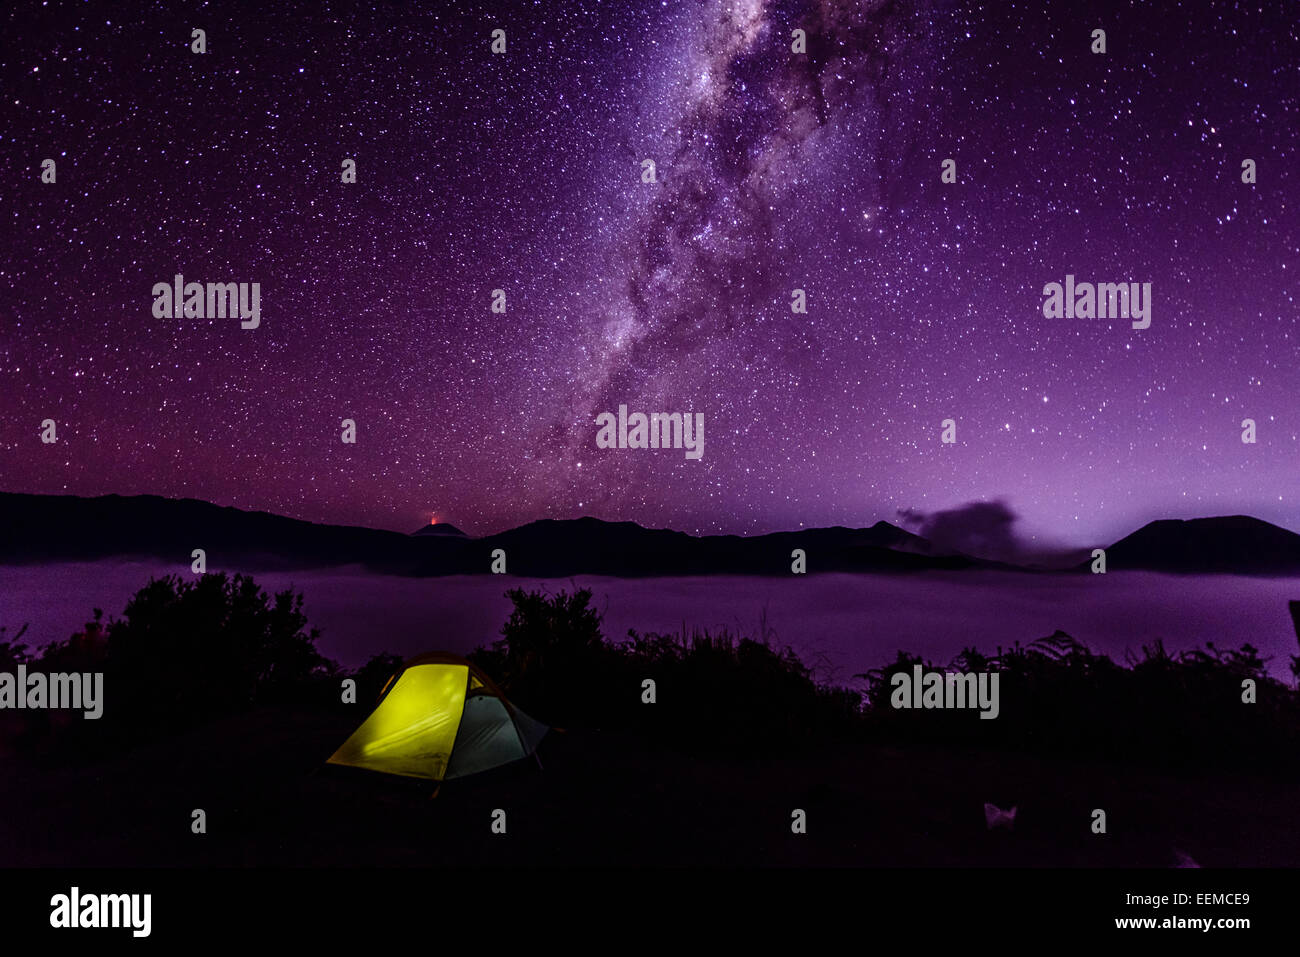 Milky Way galaxy over campsite in starry night sky - Stock Image